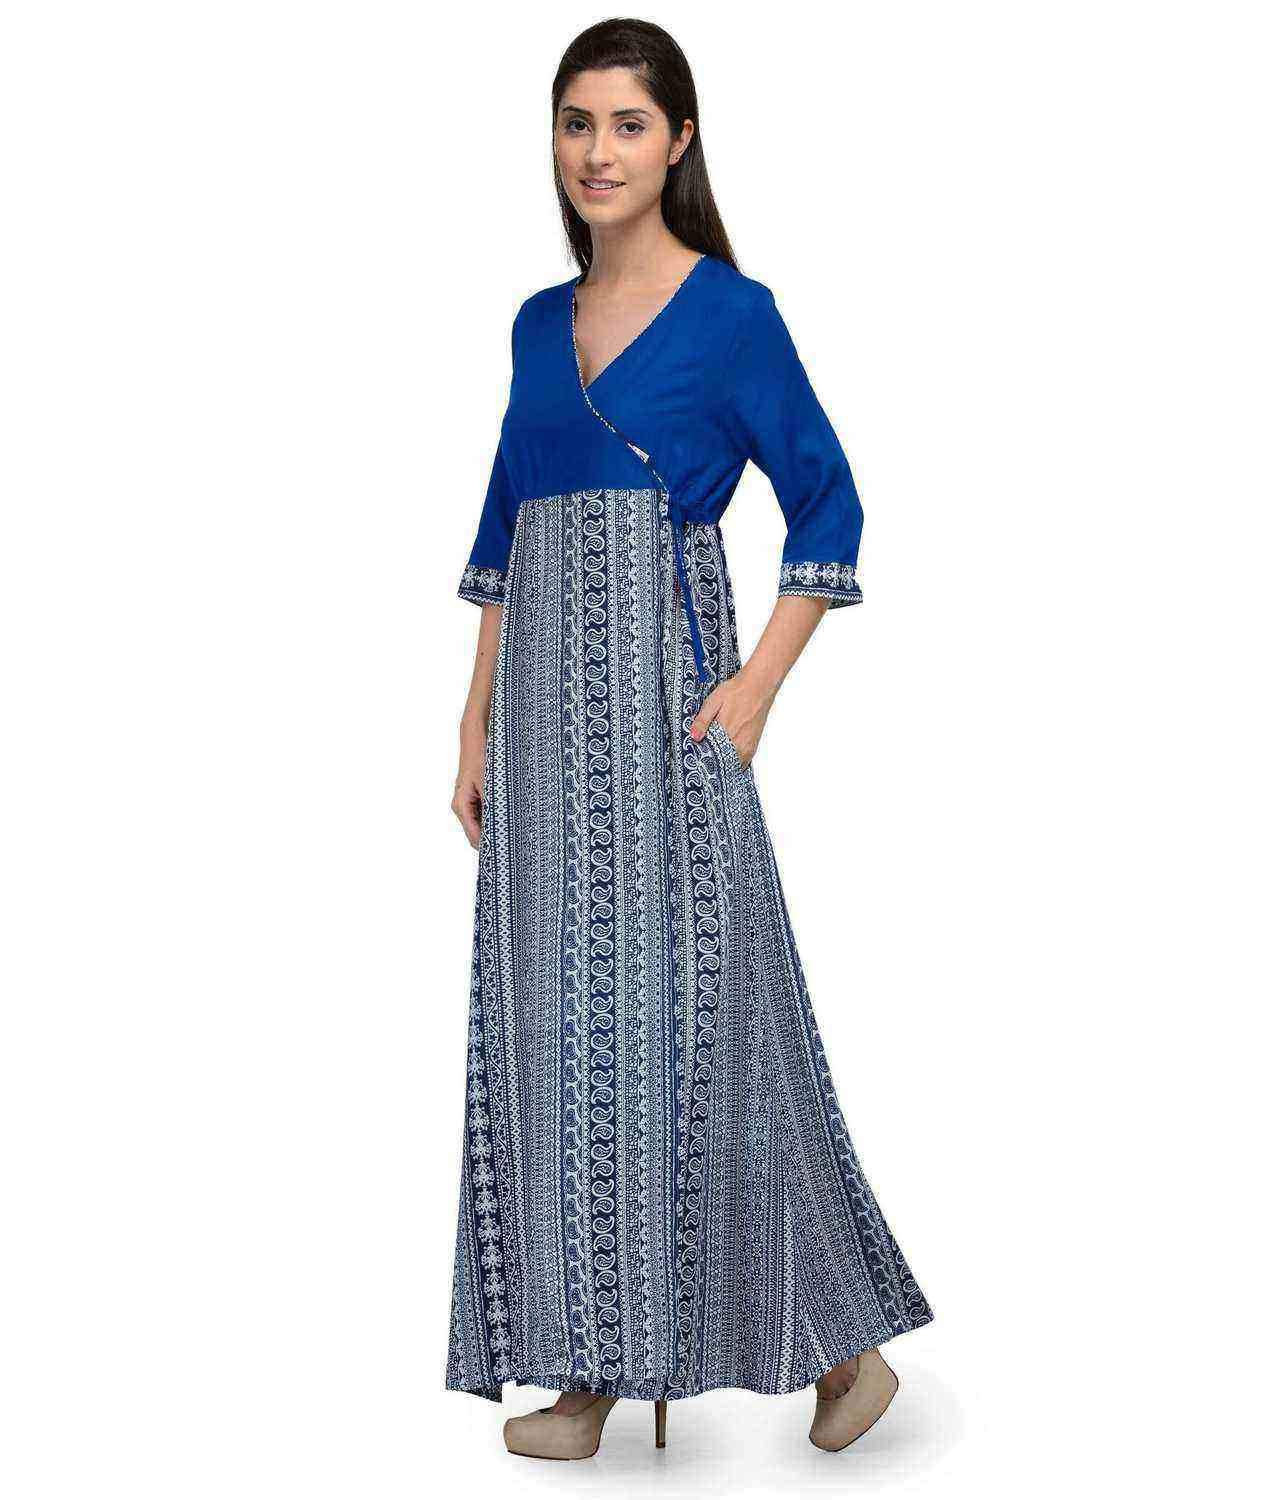 Paisley Print Wrap Style Maxi Nighty in Turquoise:Print